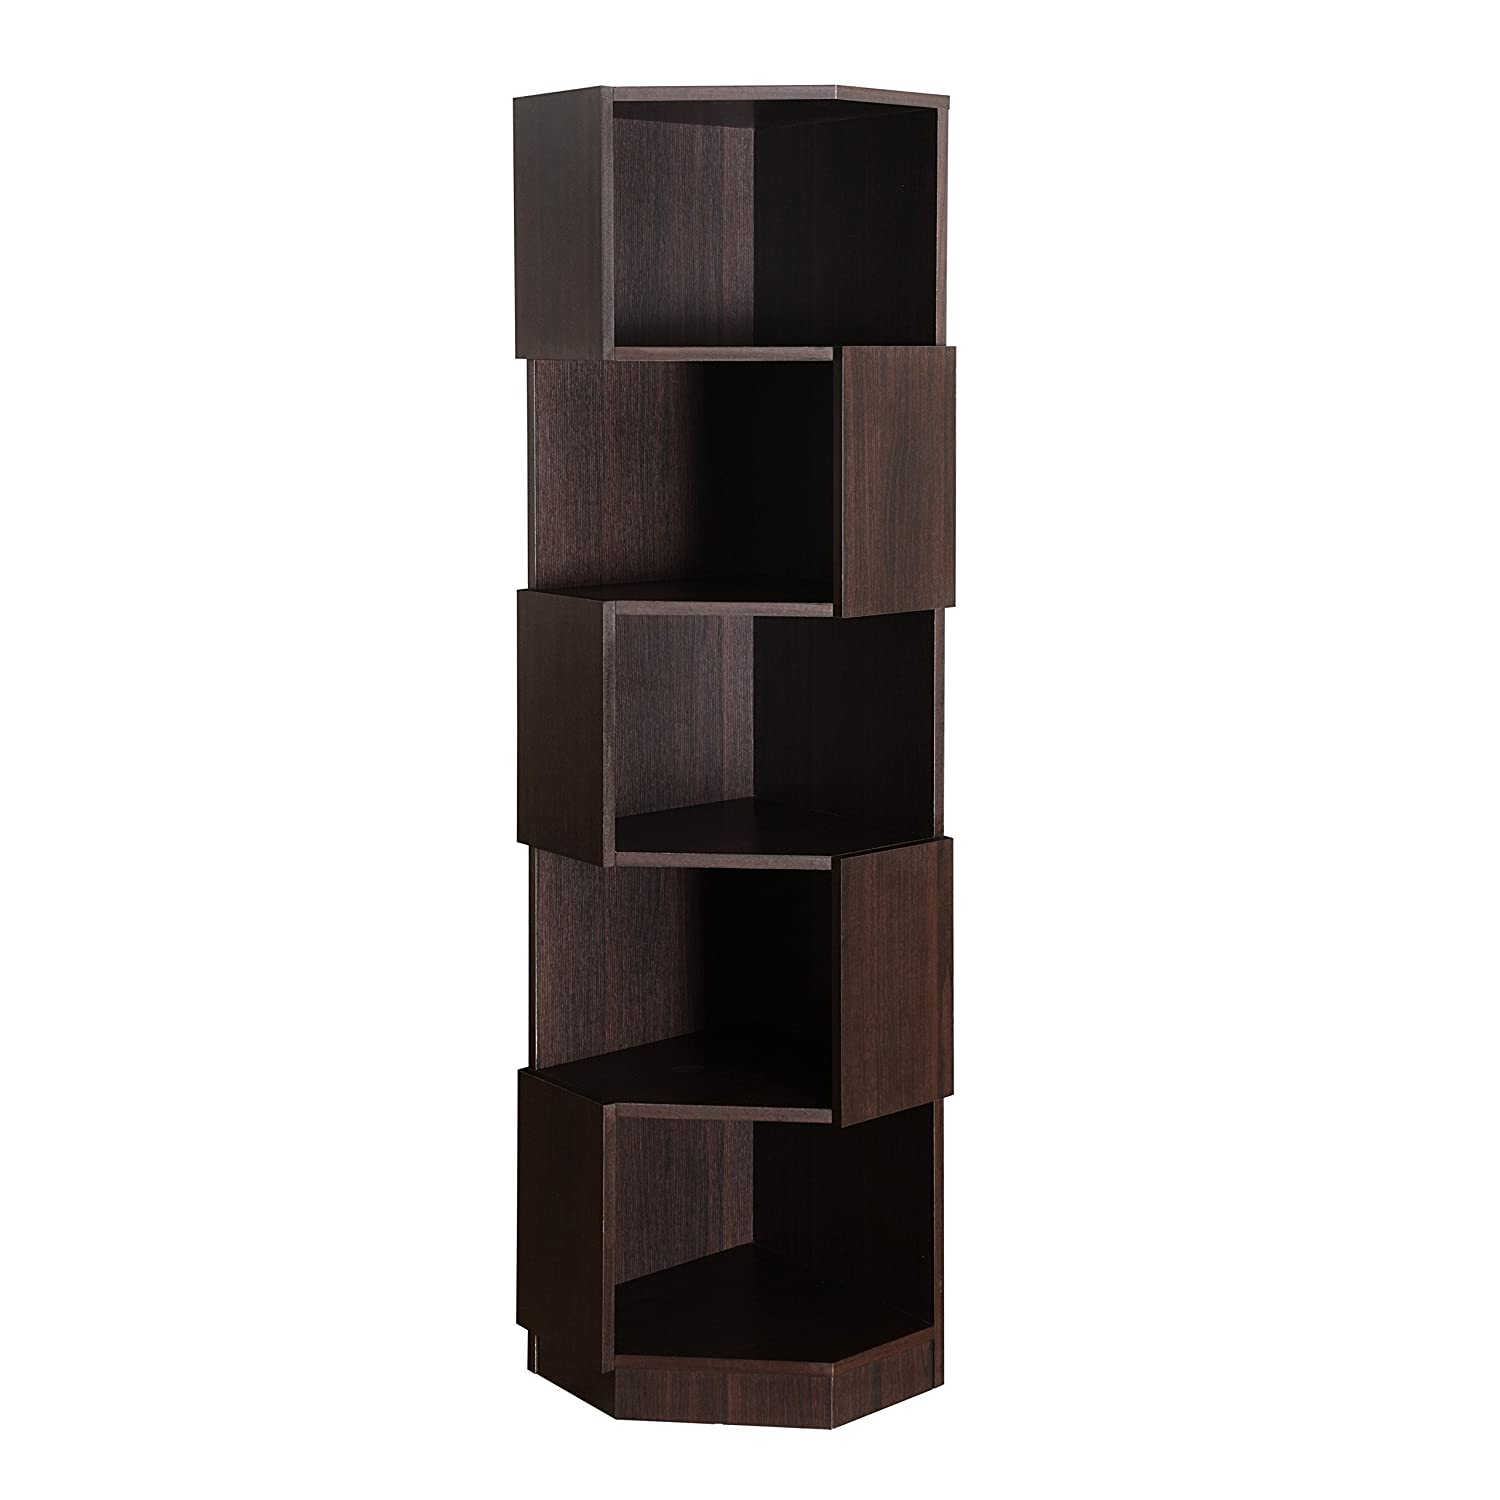 Design Zig Zag Bookshelf amazon com modern dark brown 5 shelf zig zag bookcase space saving corner display stand smart storage design perfect for living r